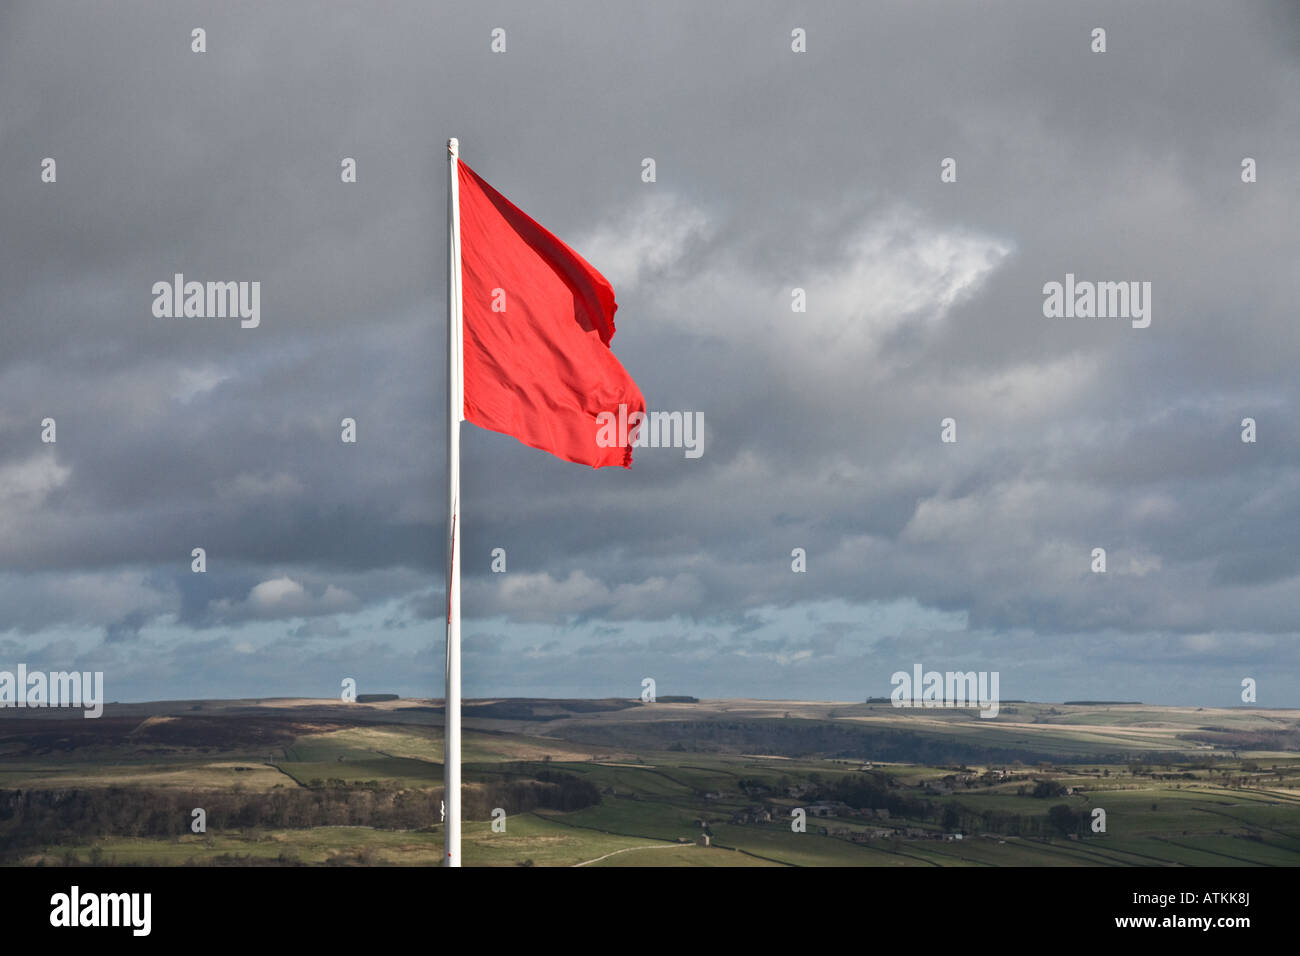 Red flag on the edge of Army training land in Swaledale, Yorkshire. - Stock Image